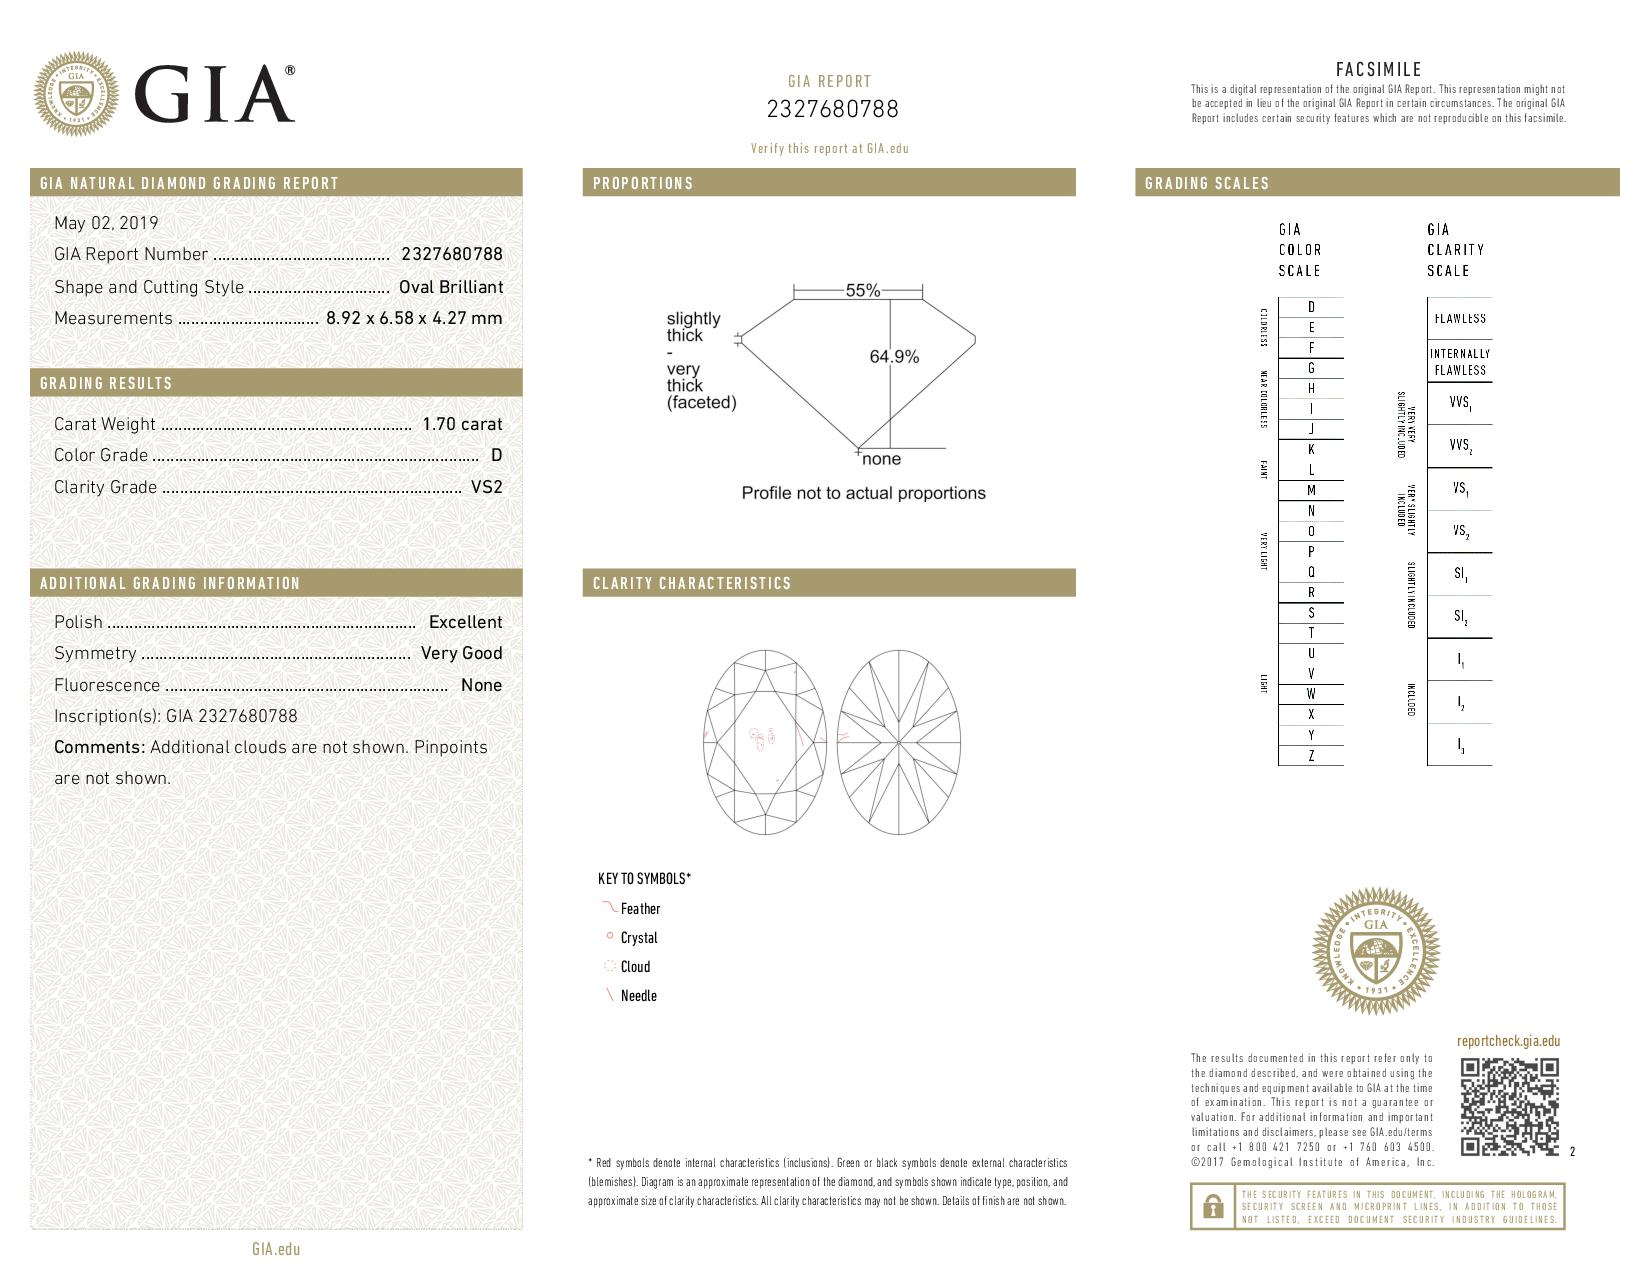 This is a 1.70 carat oval shape, D color, VS2 clarity natural diamond accompanied by a GIA grading report.